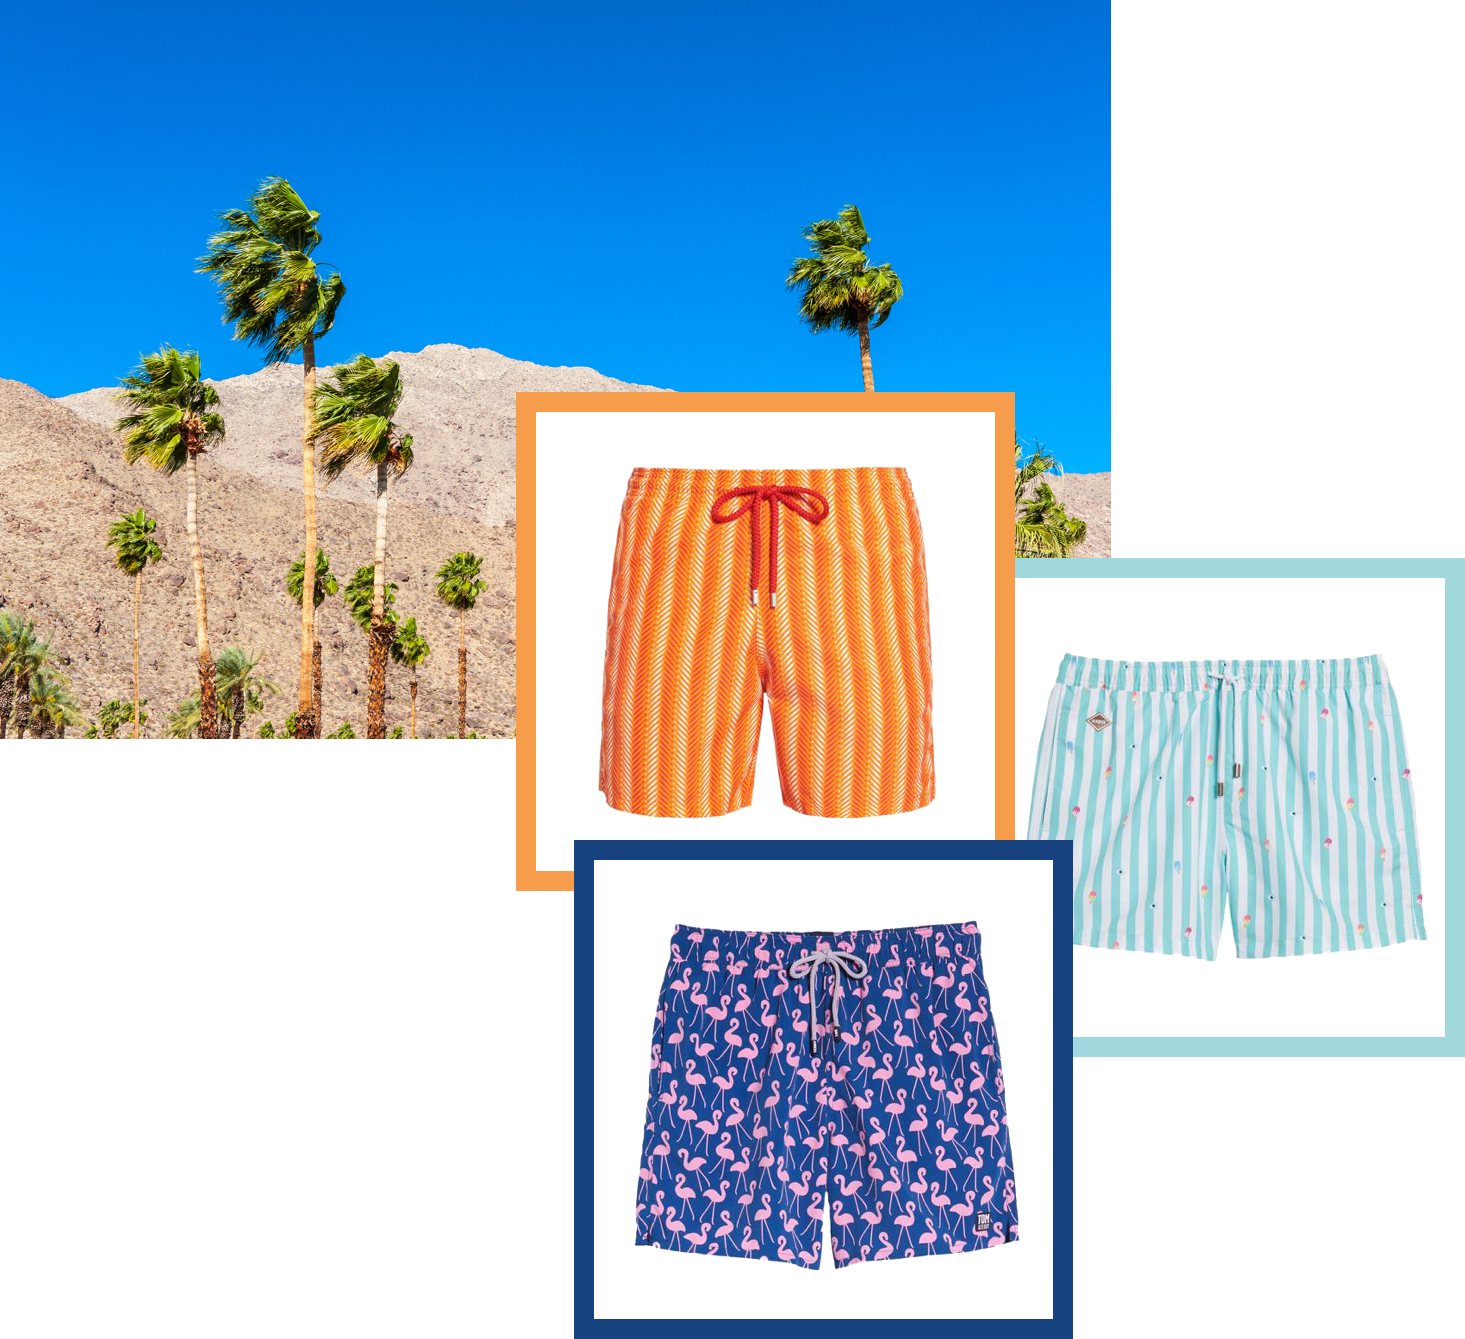 Swimsuits inspired by Palm Springs